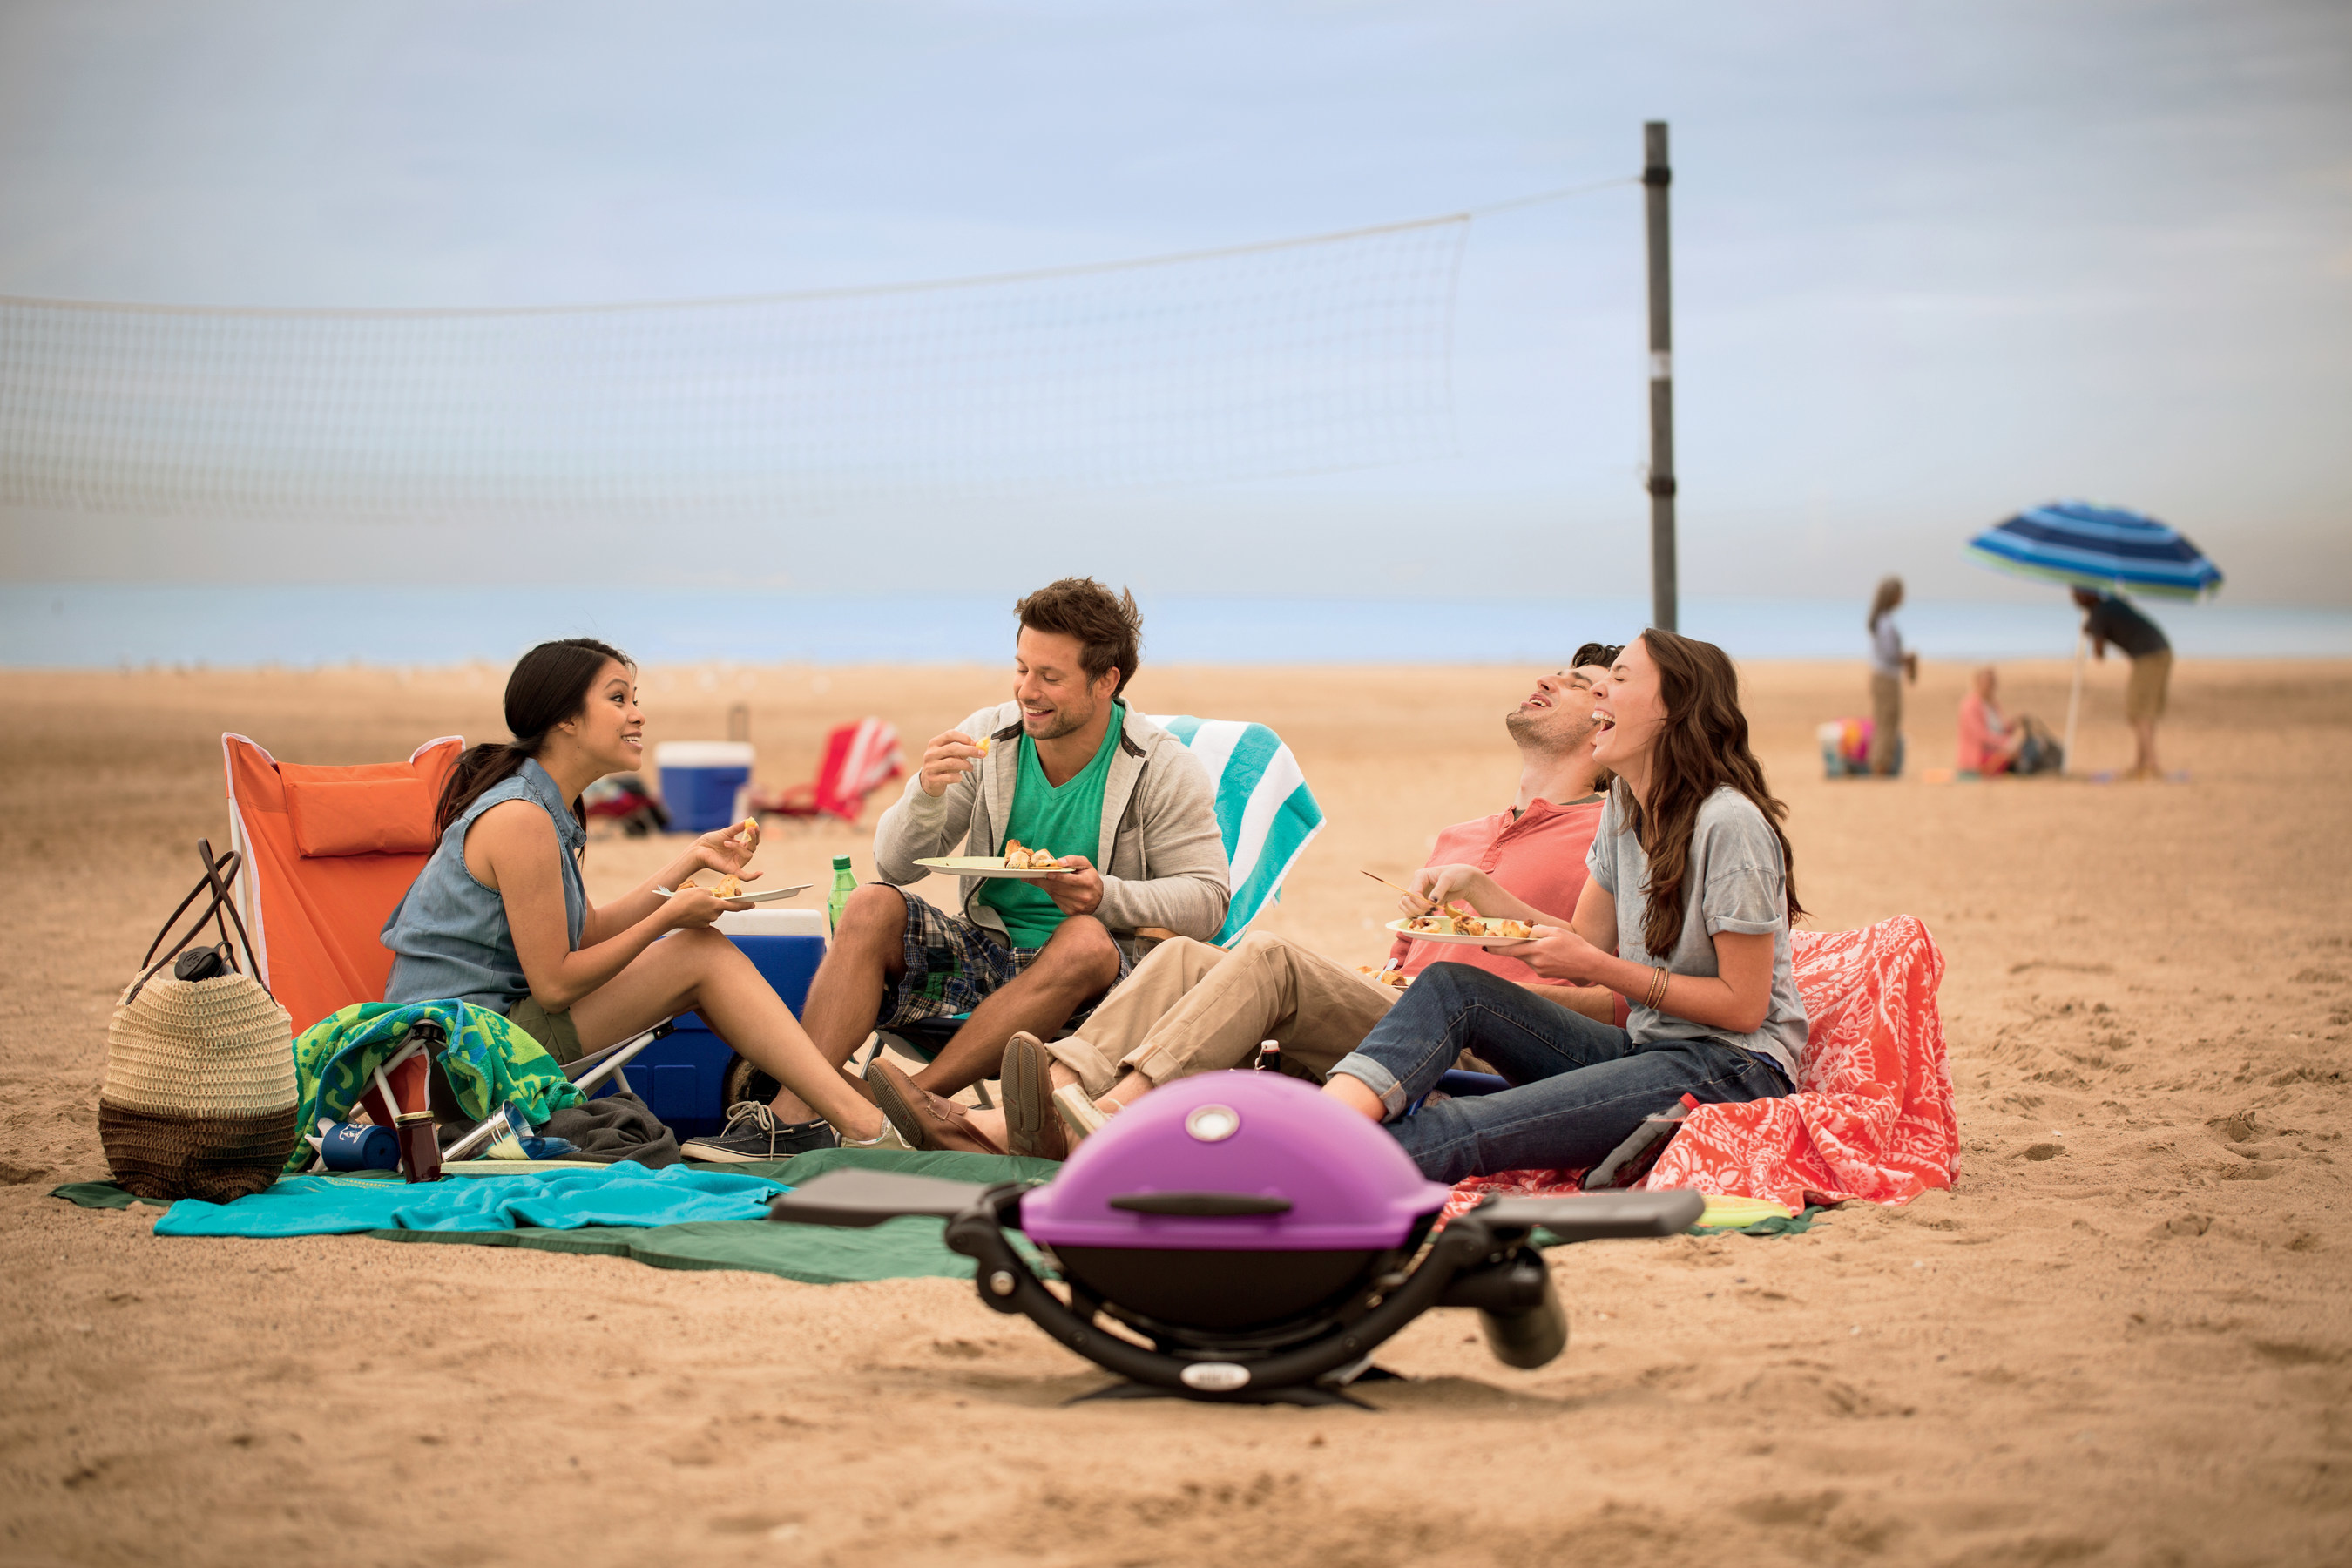 """Weber's new Q1200 gas grills come in six fun colors-blue, purple, fuchsia, orange, black and green.  Fifty-eight percent of all grill owners enjoy grilling away from home*, and weighing just 31 pounds, the Q1200 is the perfect travel companion.  Whether it's a music festival,  """"glamping"""", the beach, or home sweet home, grillers can enjoy great food and high style this summer.  Available nationwide.  Visit www.weber.com.  Source:  The 26th annual Weber GrillWatch(TM) Survey."""